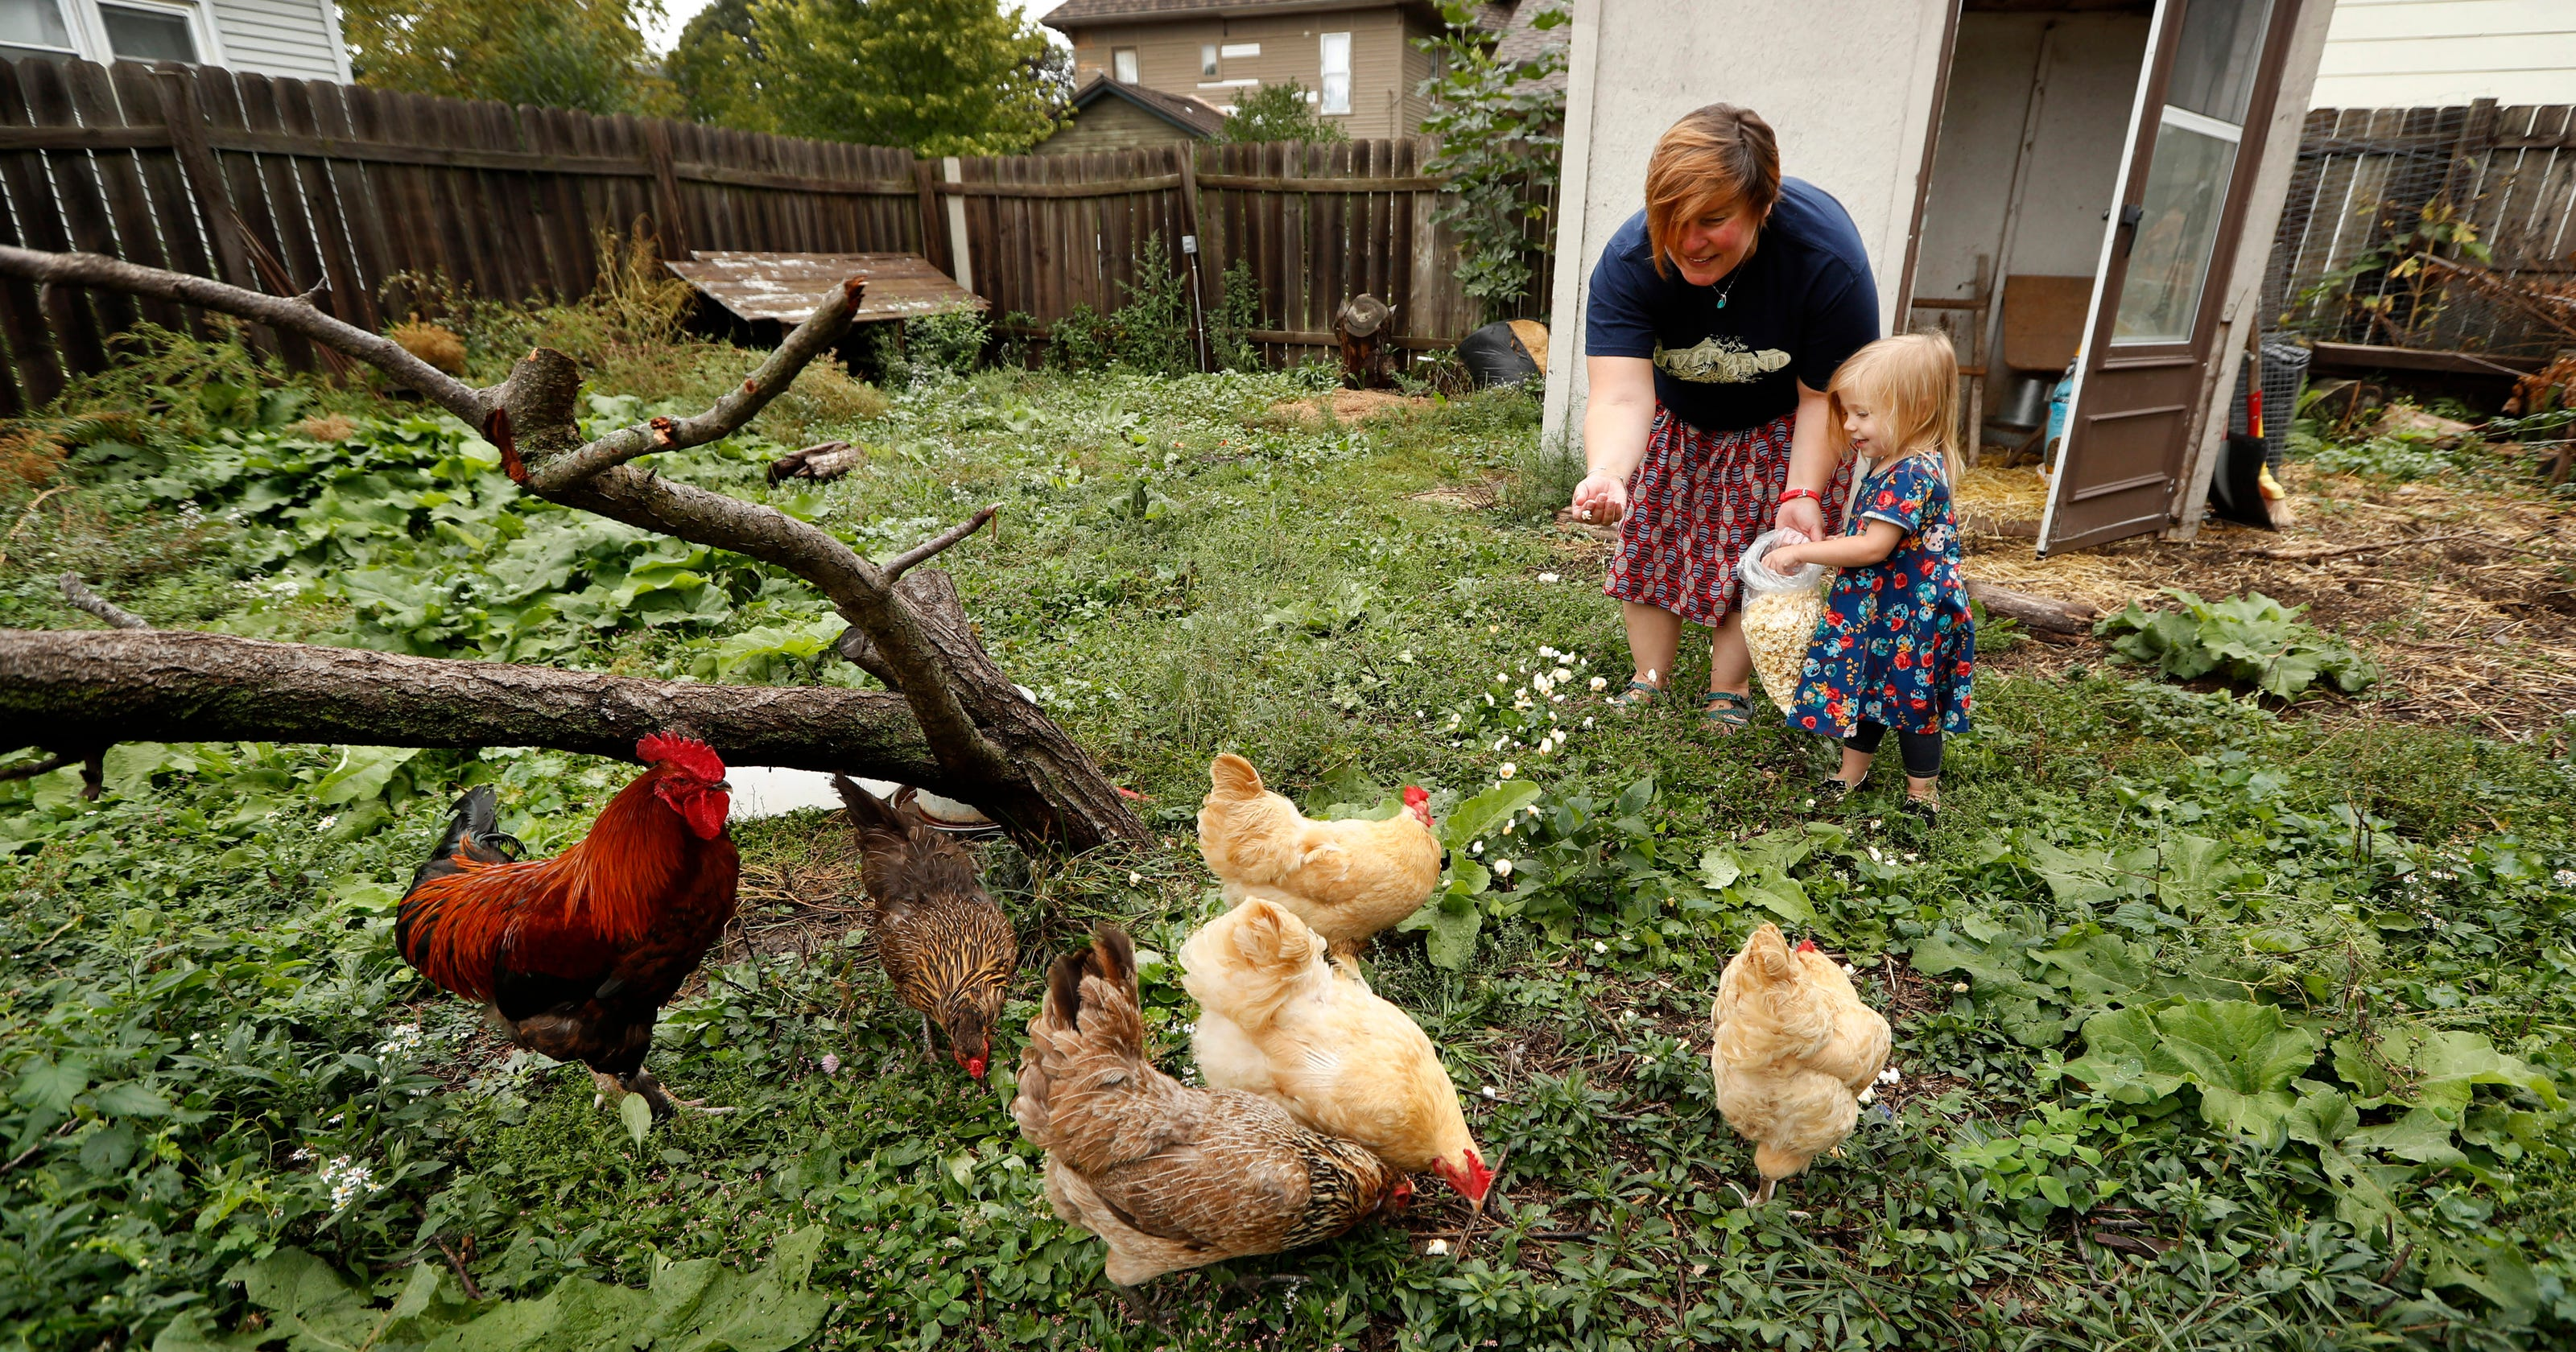 Des Moines could ban roosters from backyard farms